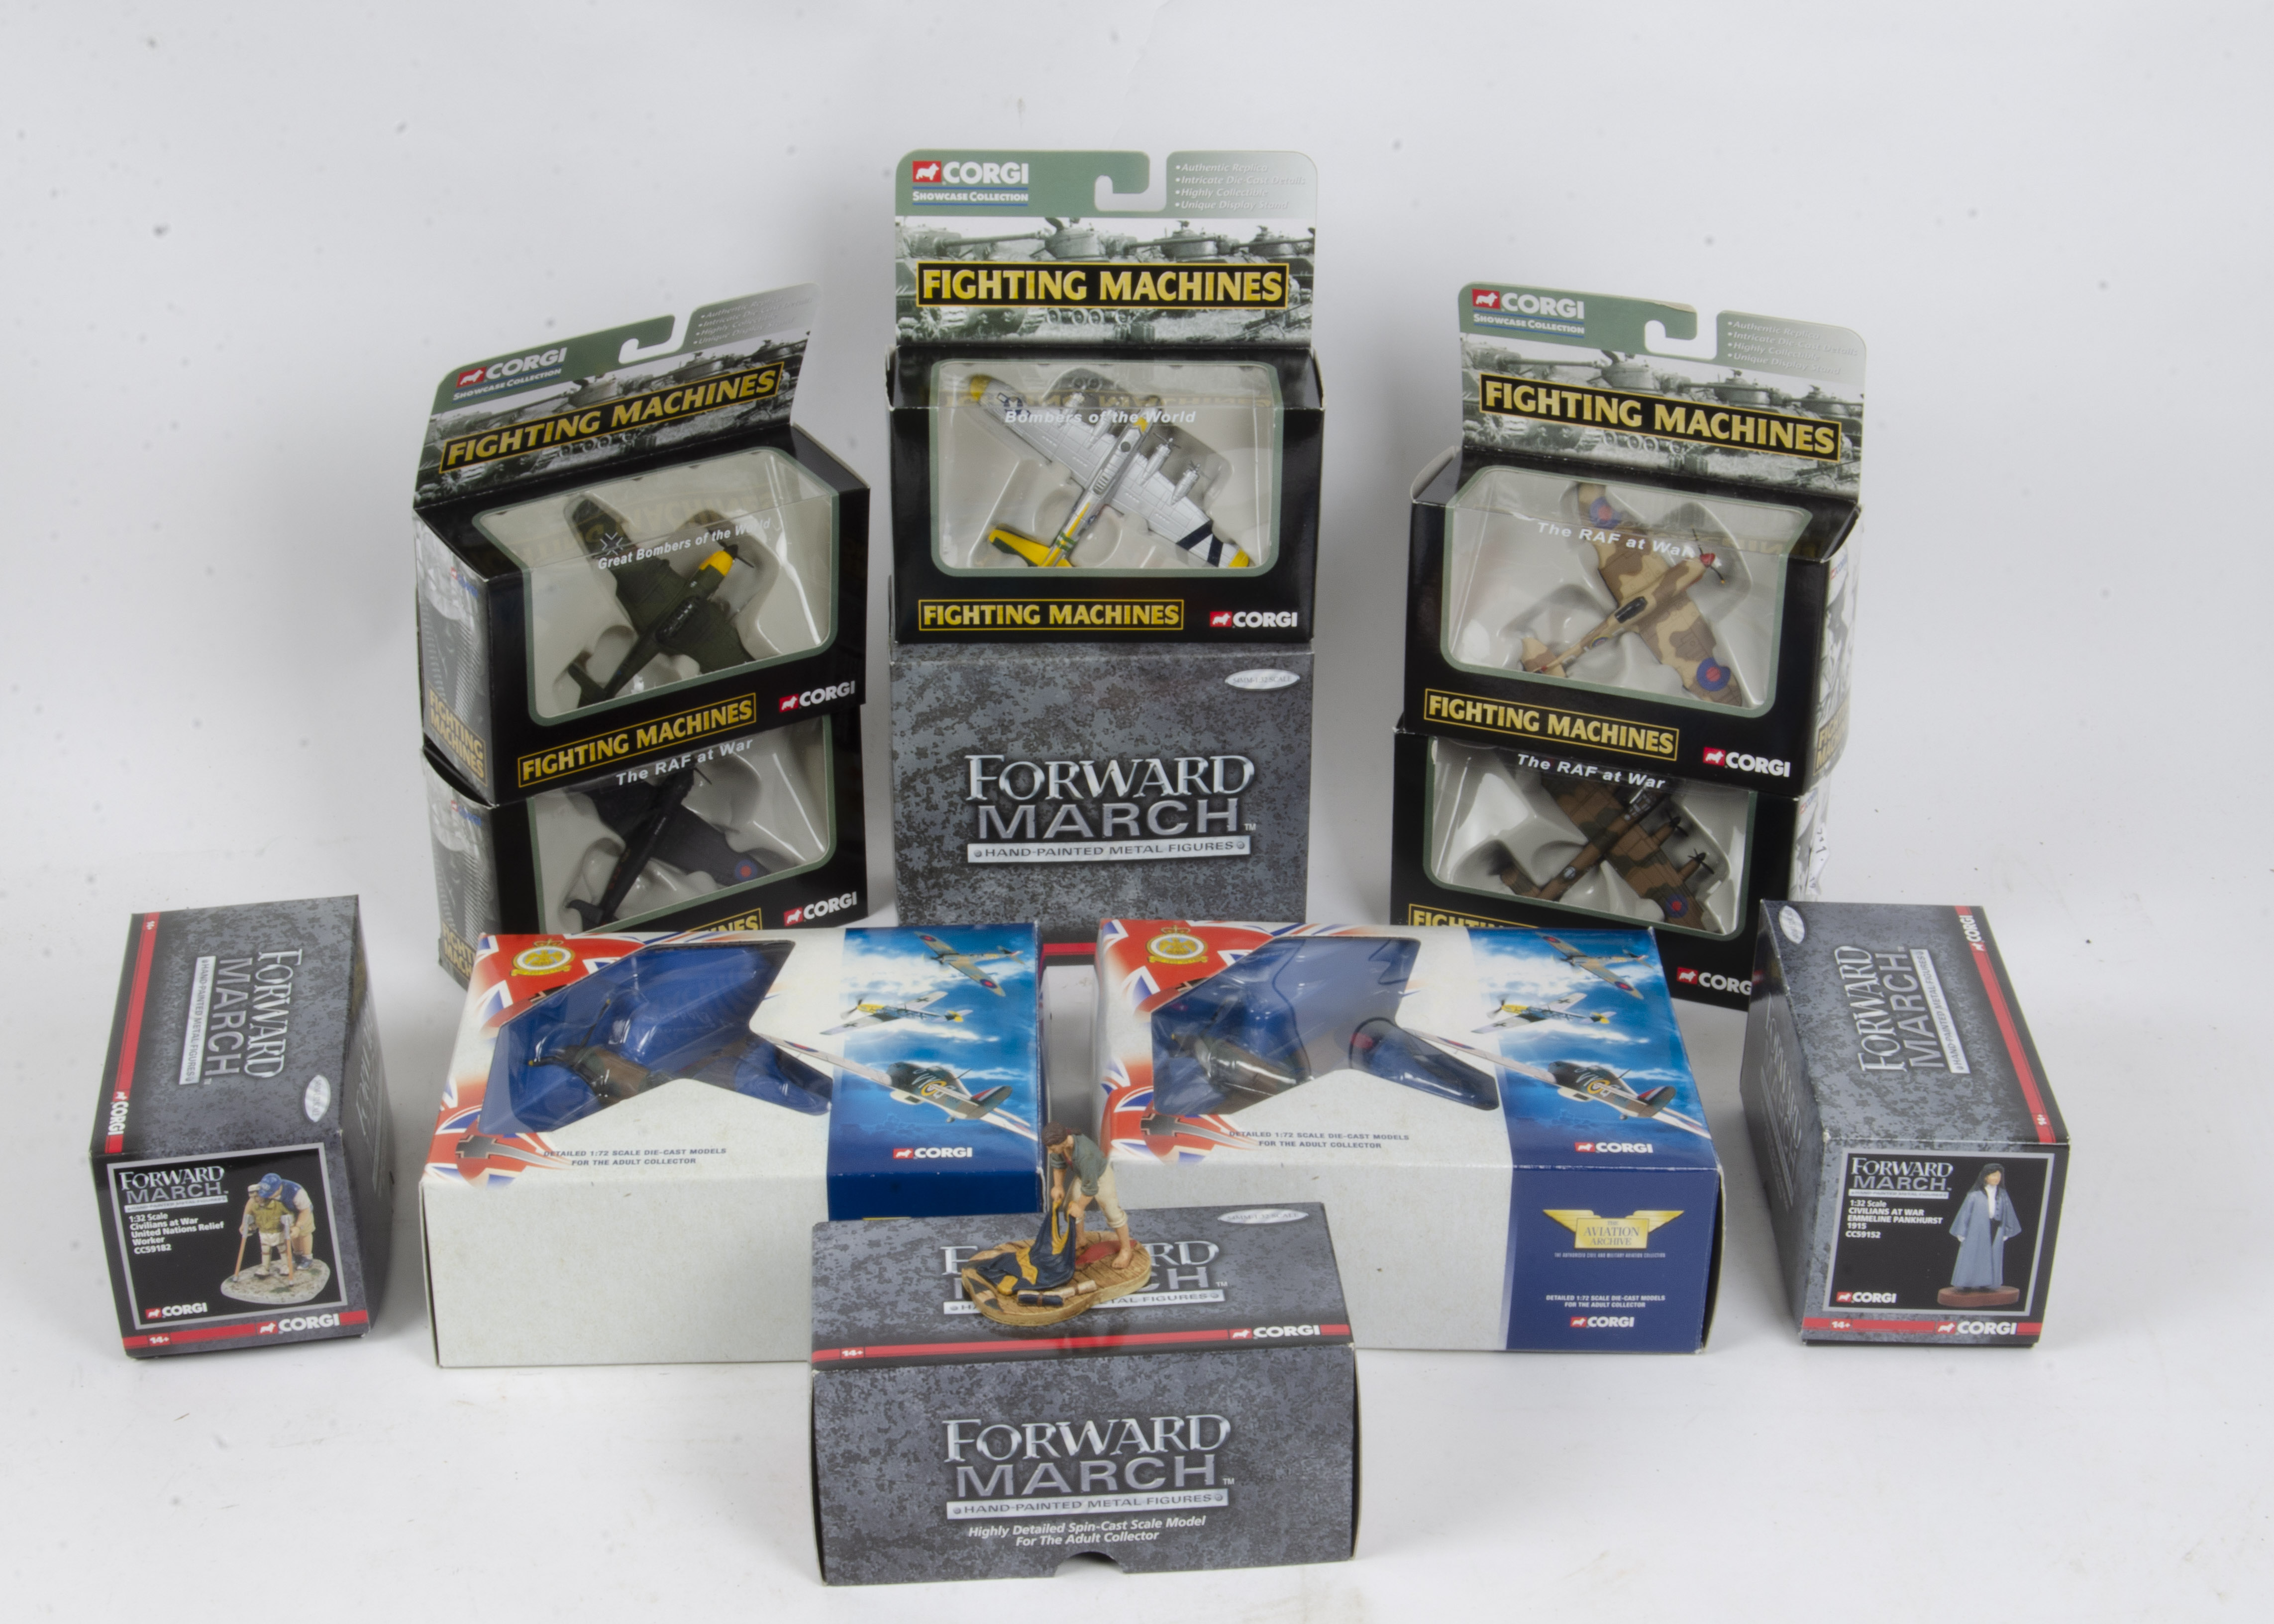 Corgi Military Aircraft and Forward March Figures, a boxed collection comprising Fighting